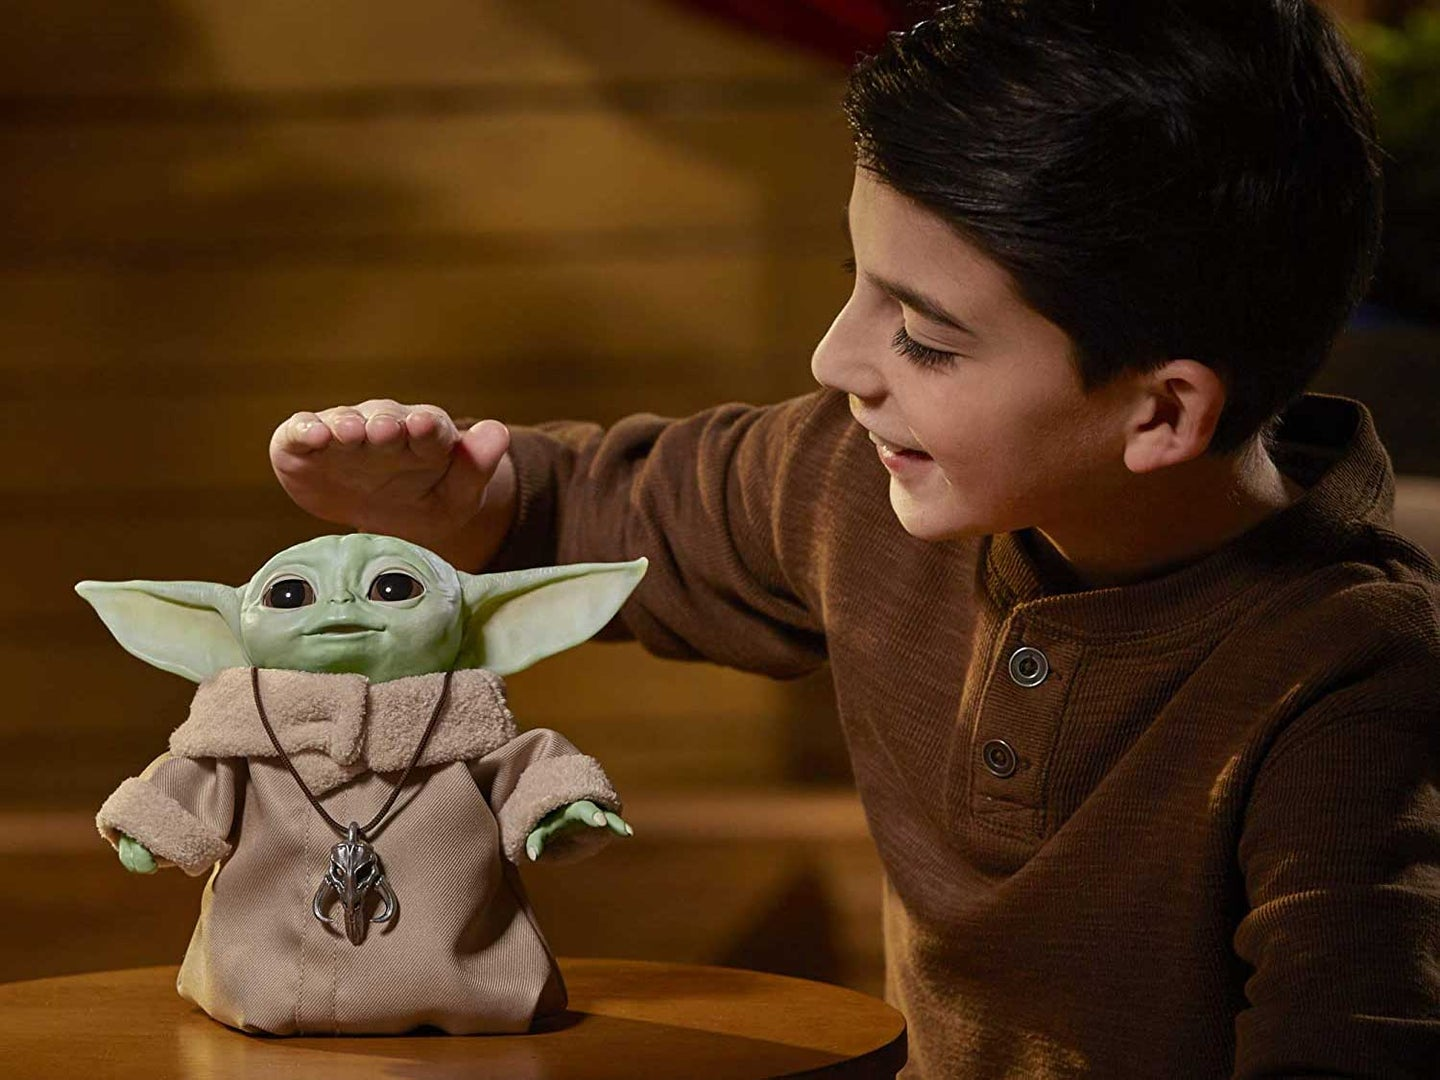 Boy playing with The Child Star Wars electronic pet.